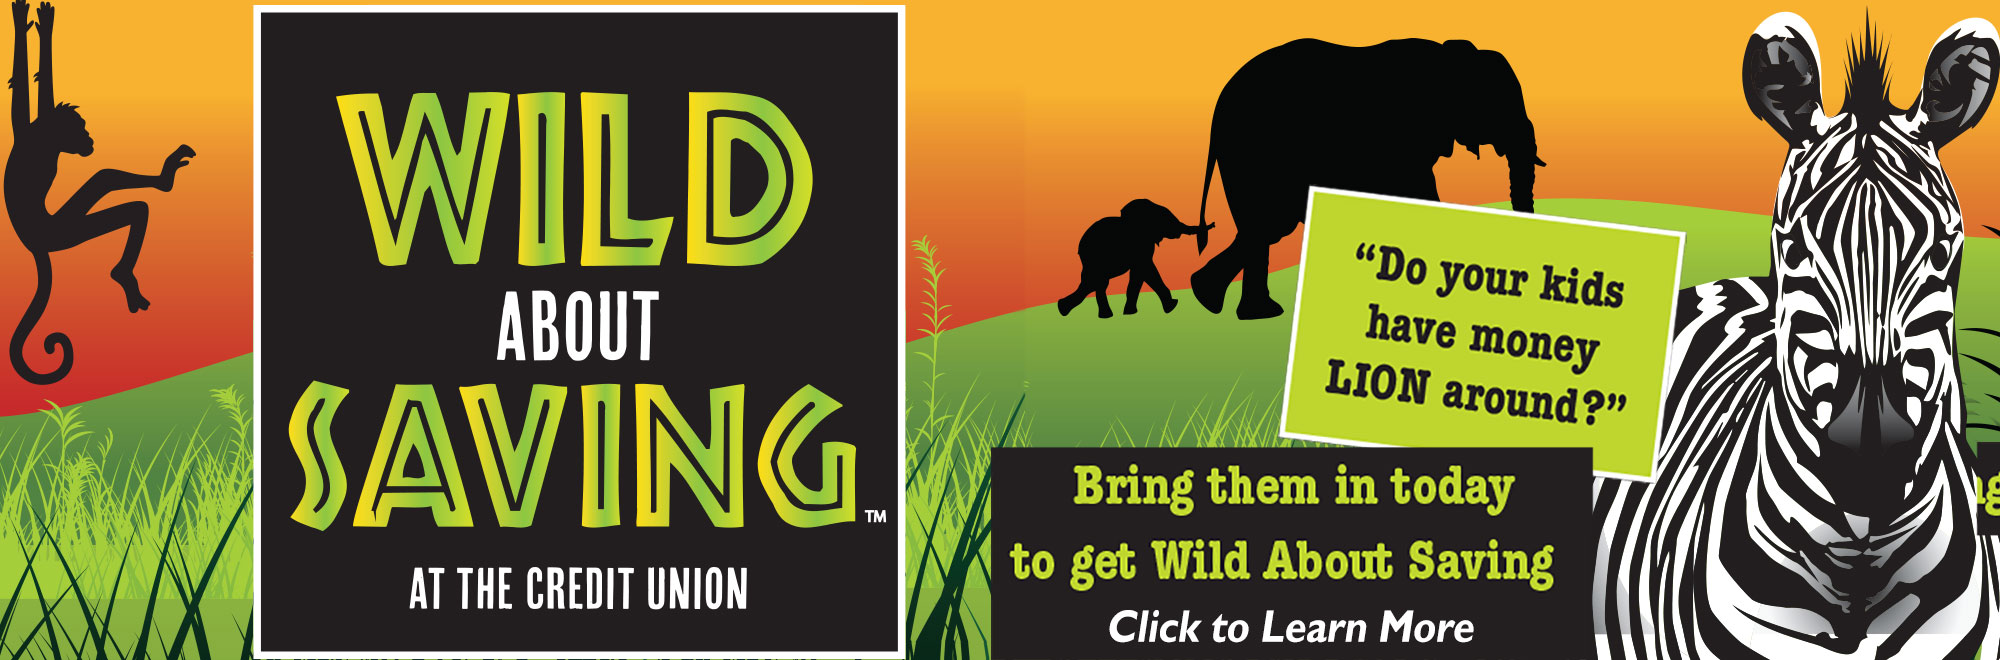 Wild About Saving at the Credit Union. Click to learn more